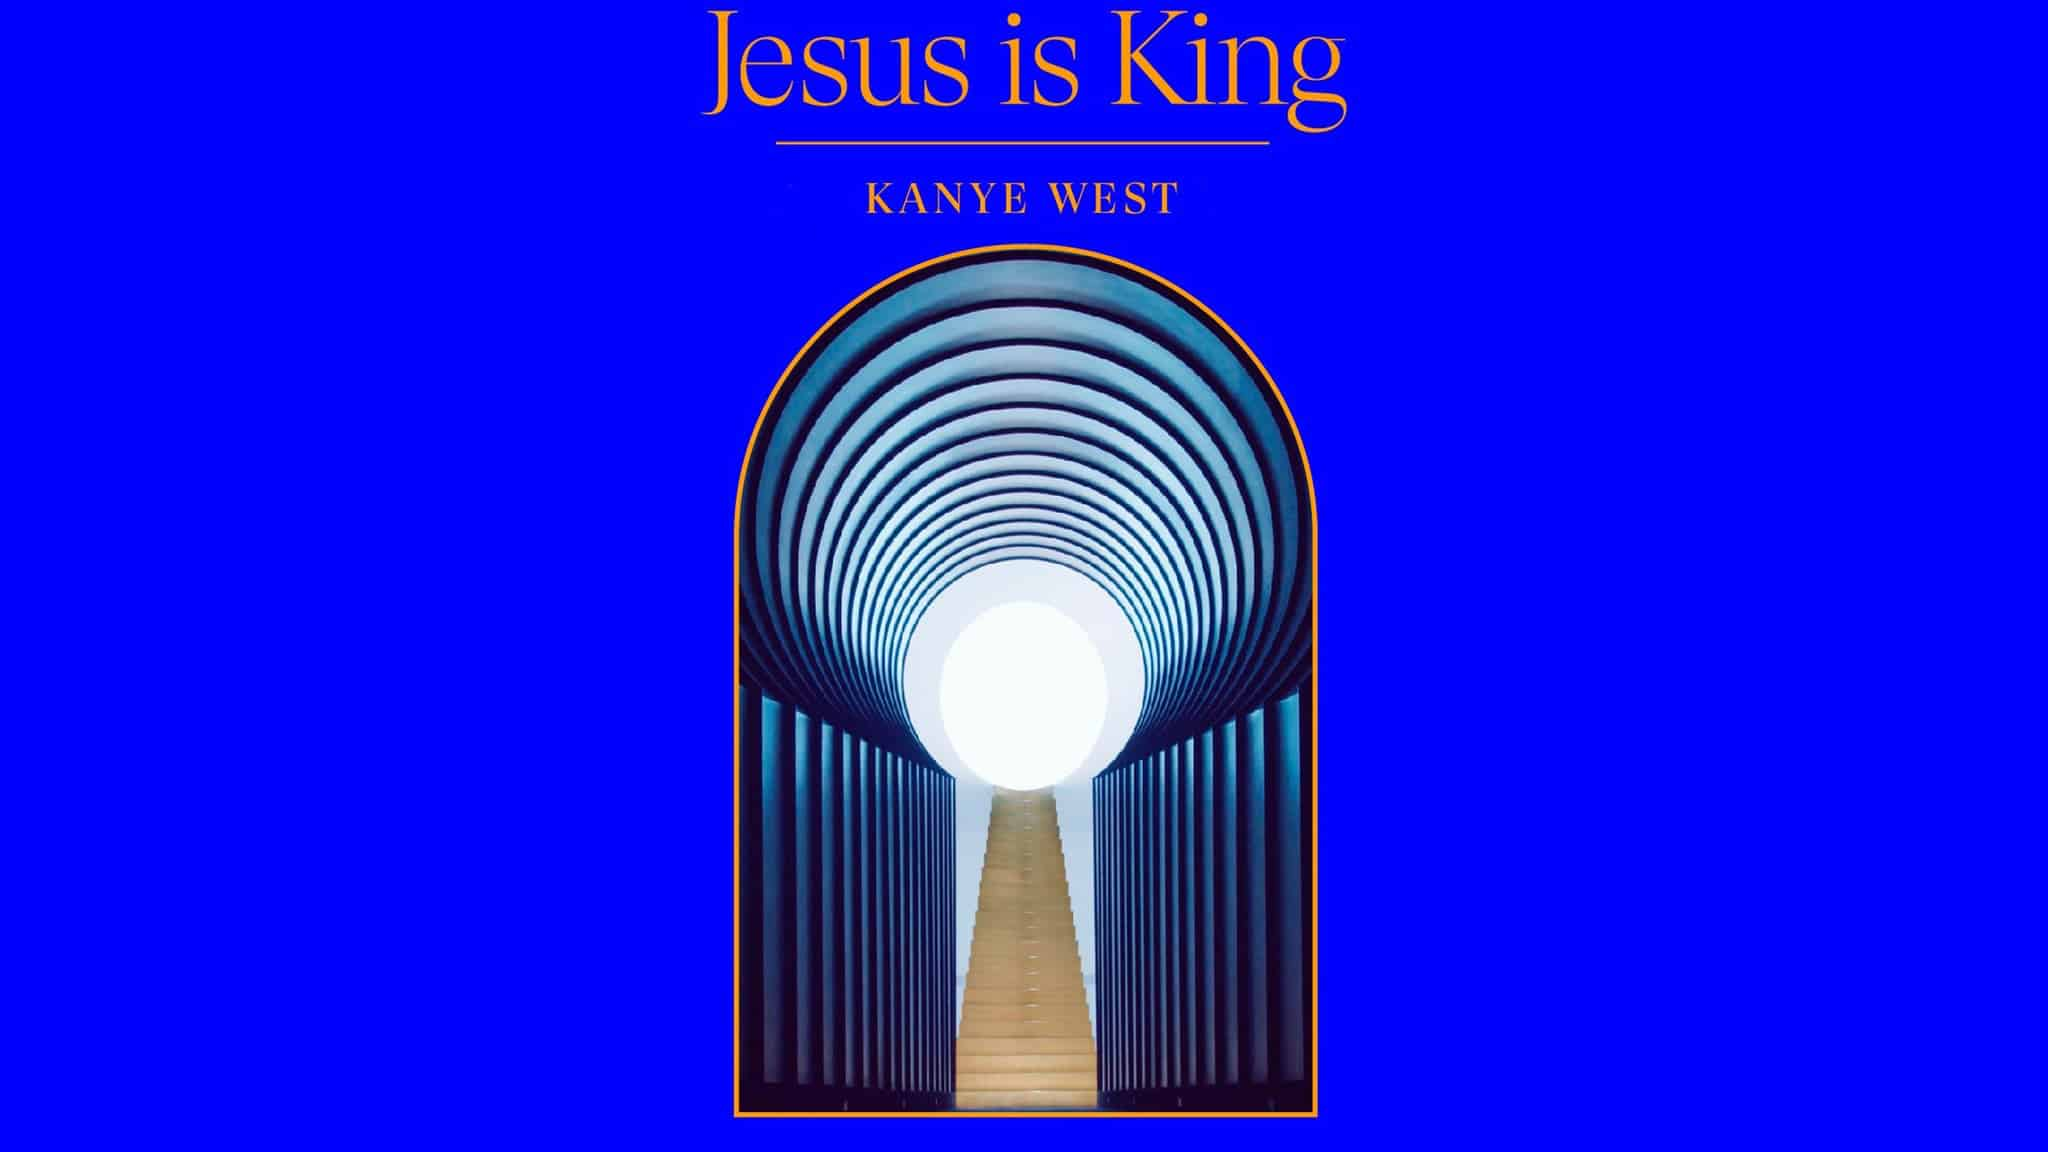 'Jesus Is King' poster